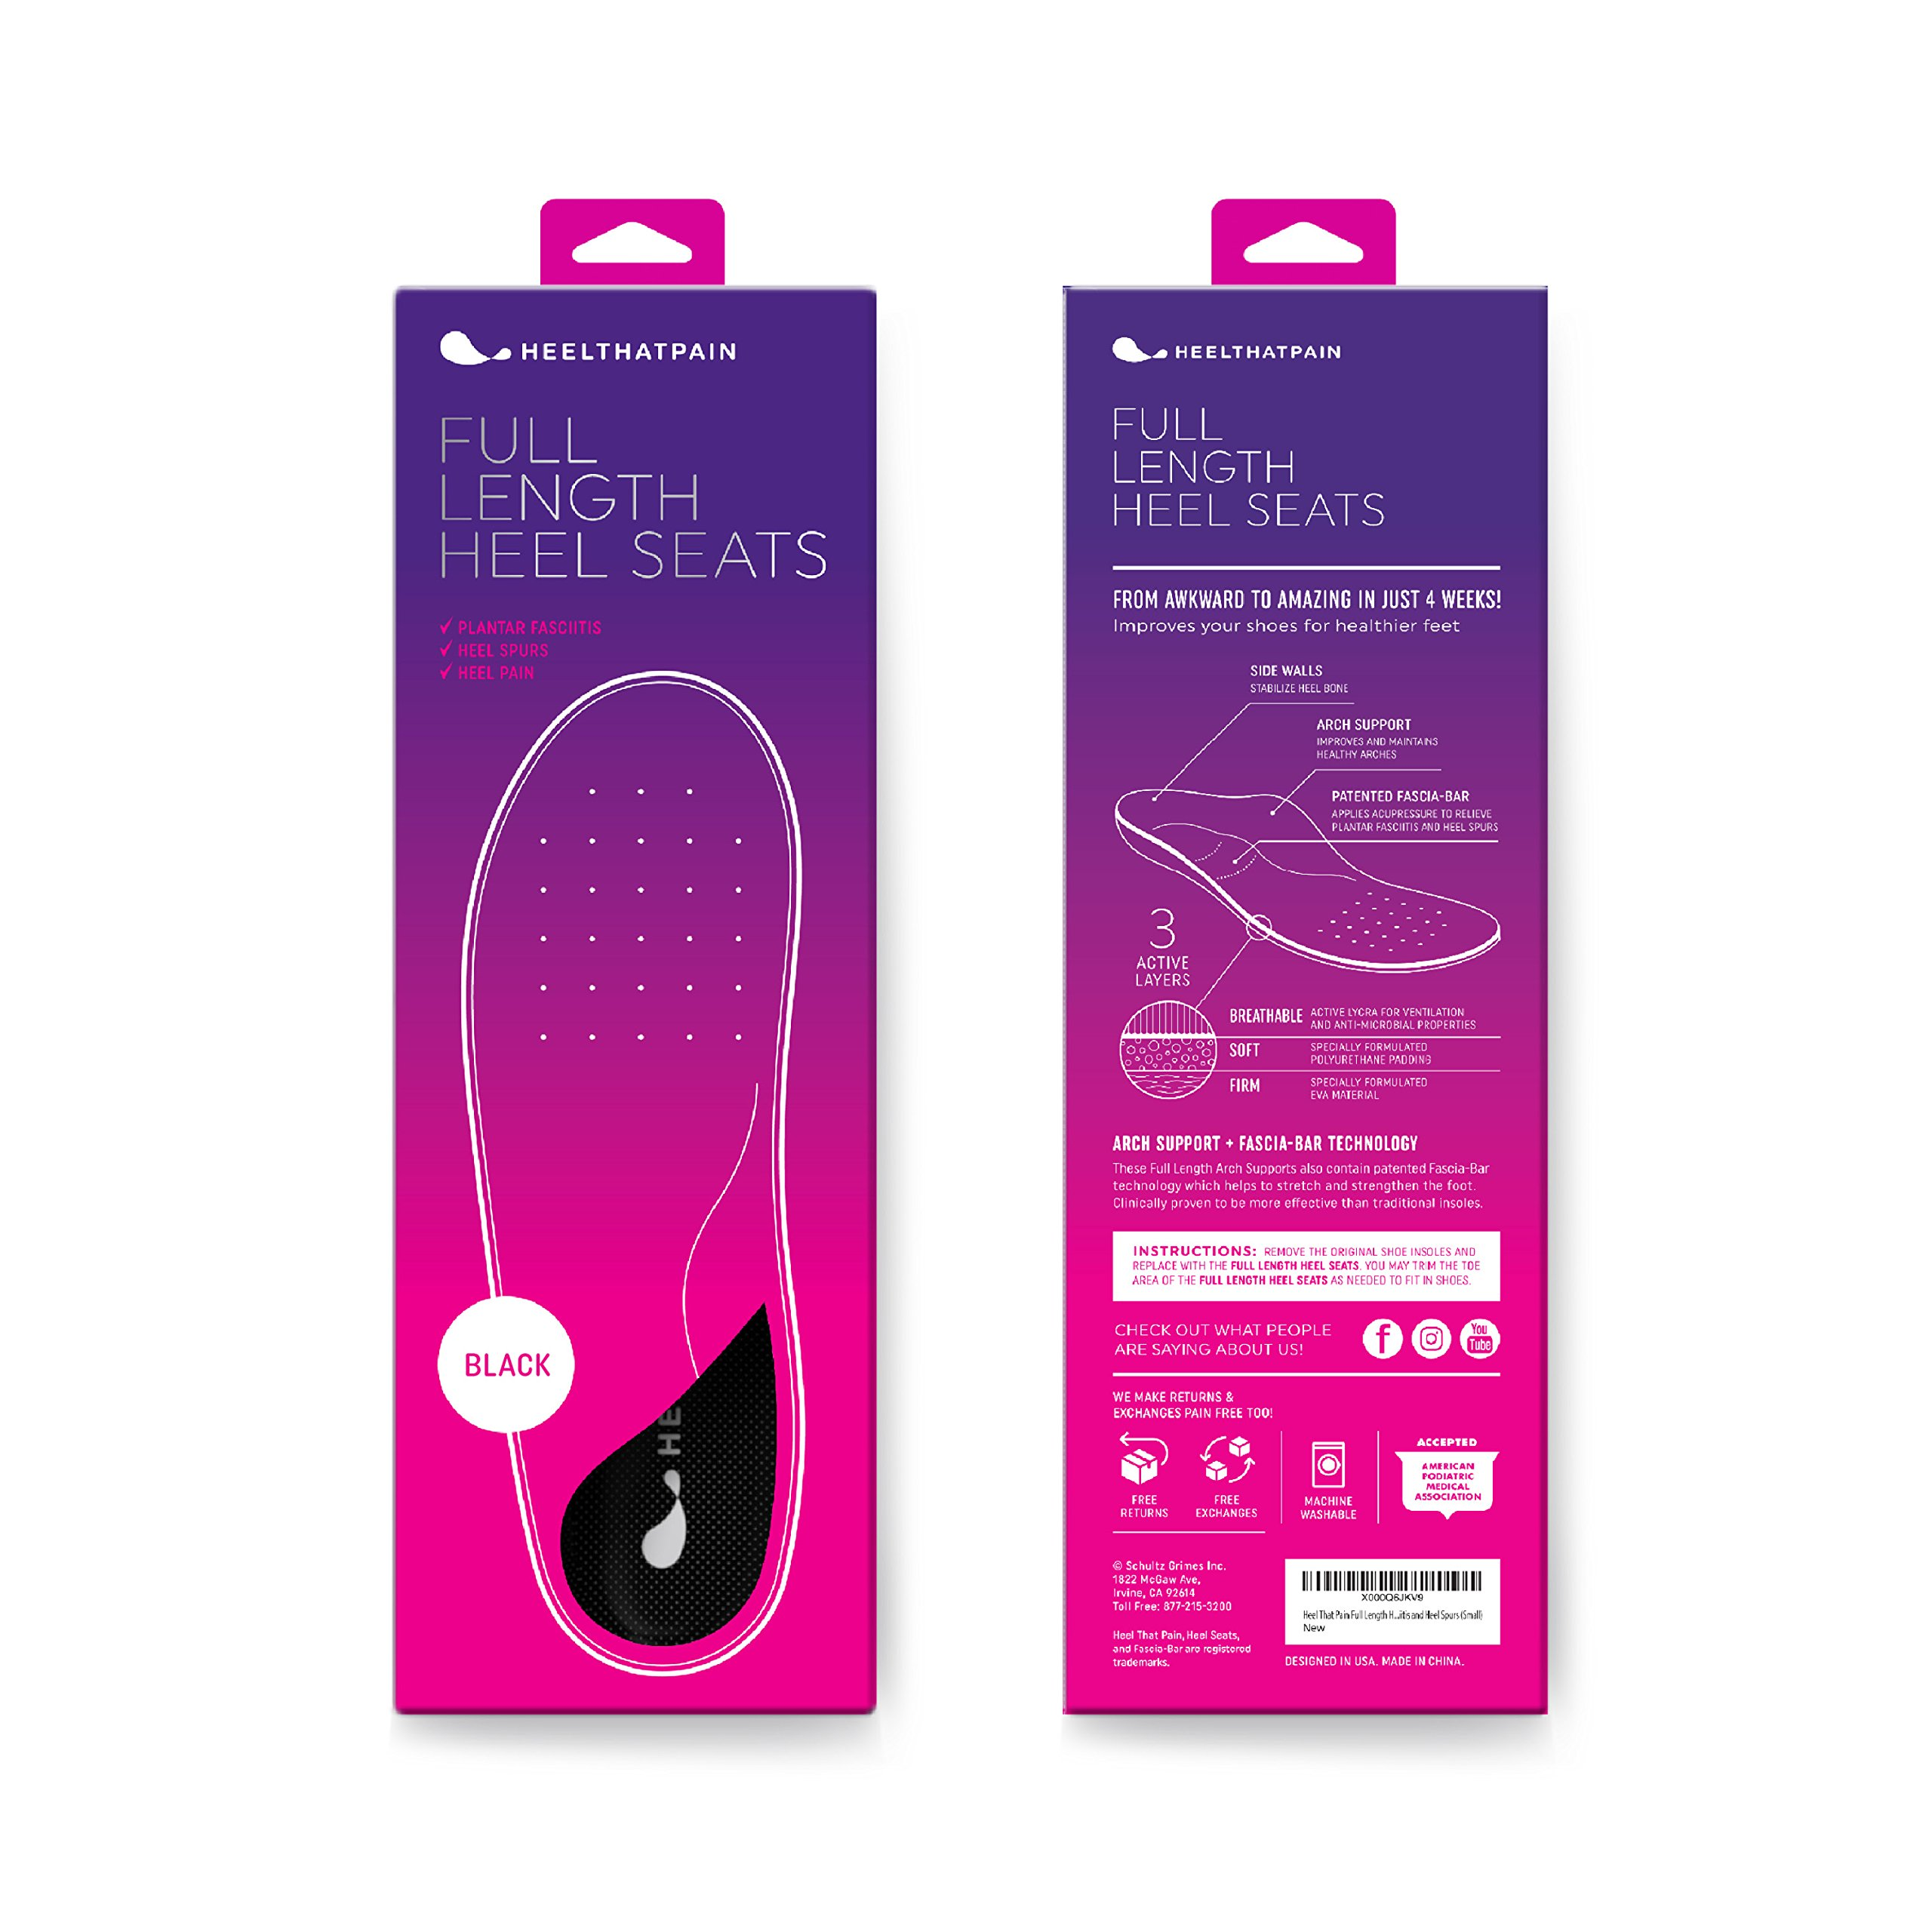 Heel That Pain Plantar Fasciitis Insoles | Full Length Heel Seats Foot Orthotic Inserts with Arch Support for Treating Heel Pain and Heel Spurs | Patented, Clinically Proven, 100% Guaranteed (XL)